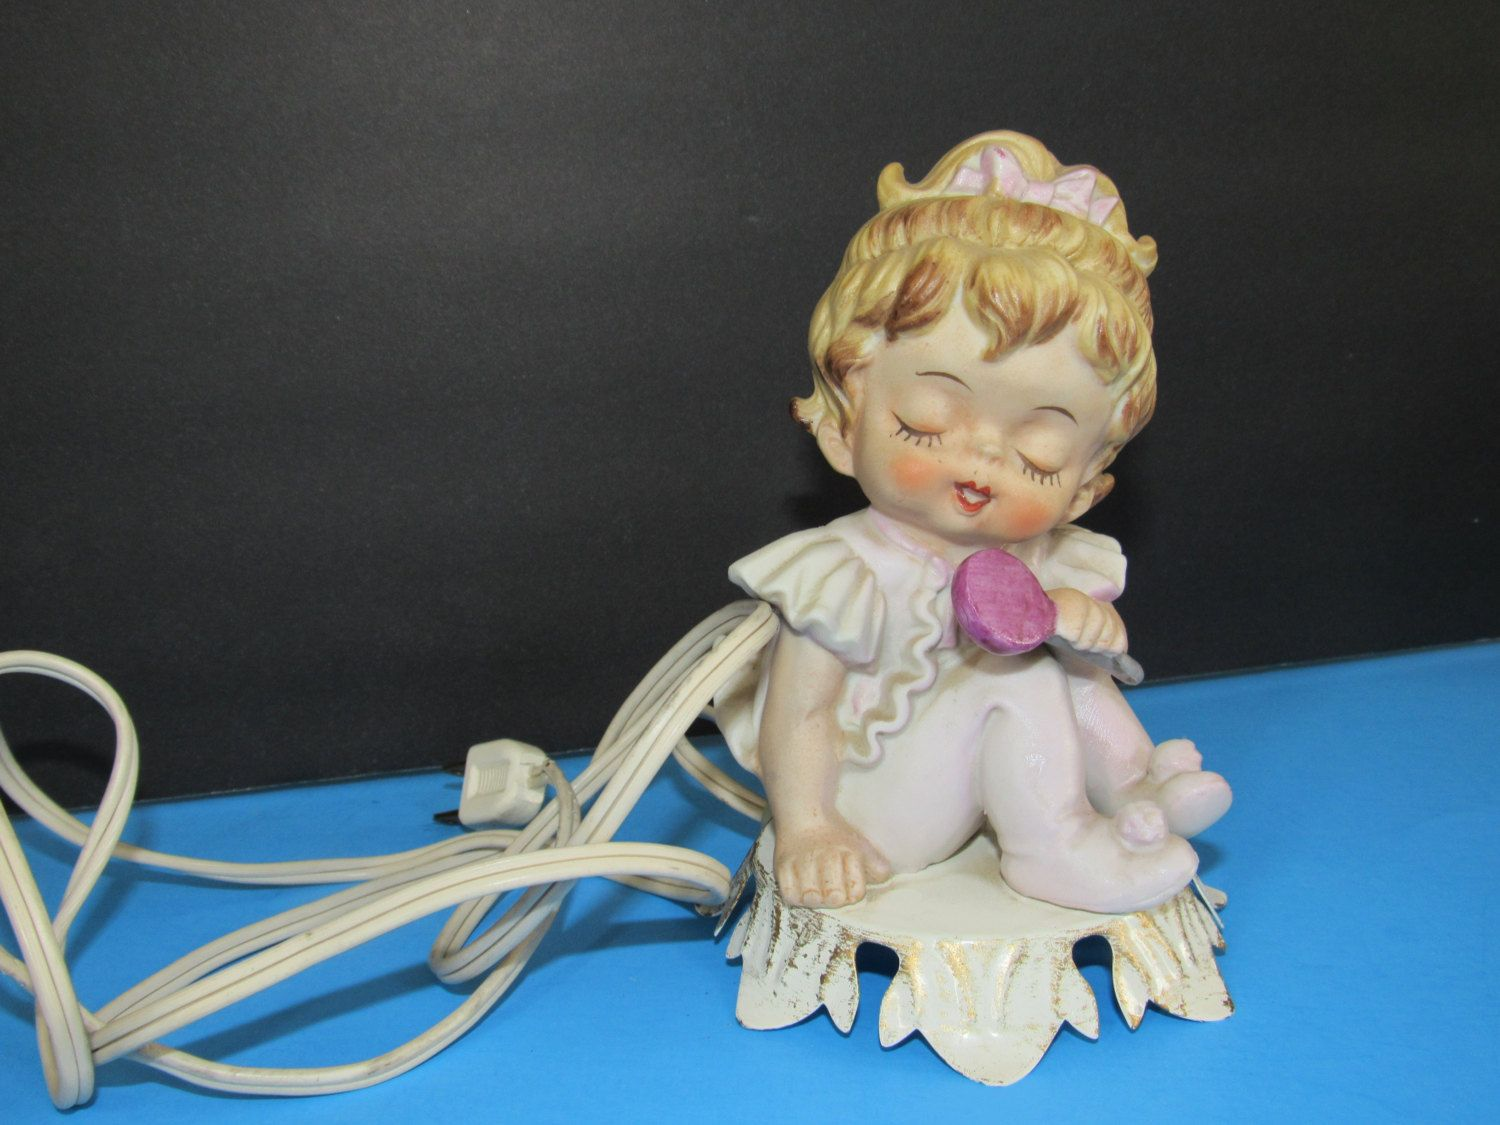 Vintage 1950s Aladdin Giftware porcelain little girl figurine Portable lamp by mariehotdeals on Etsy